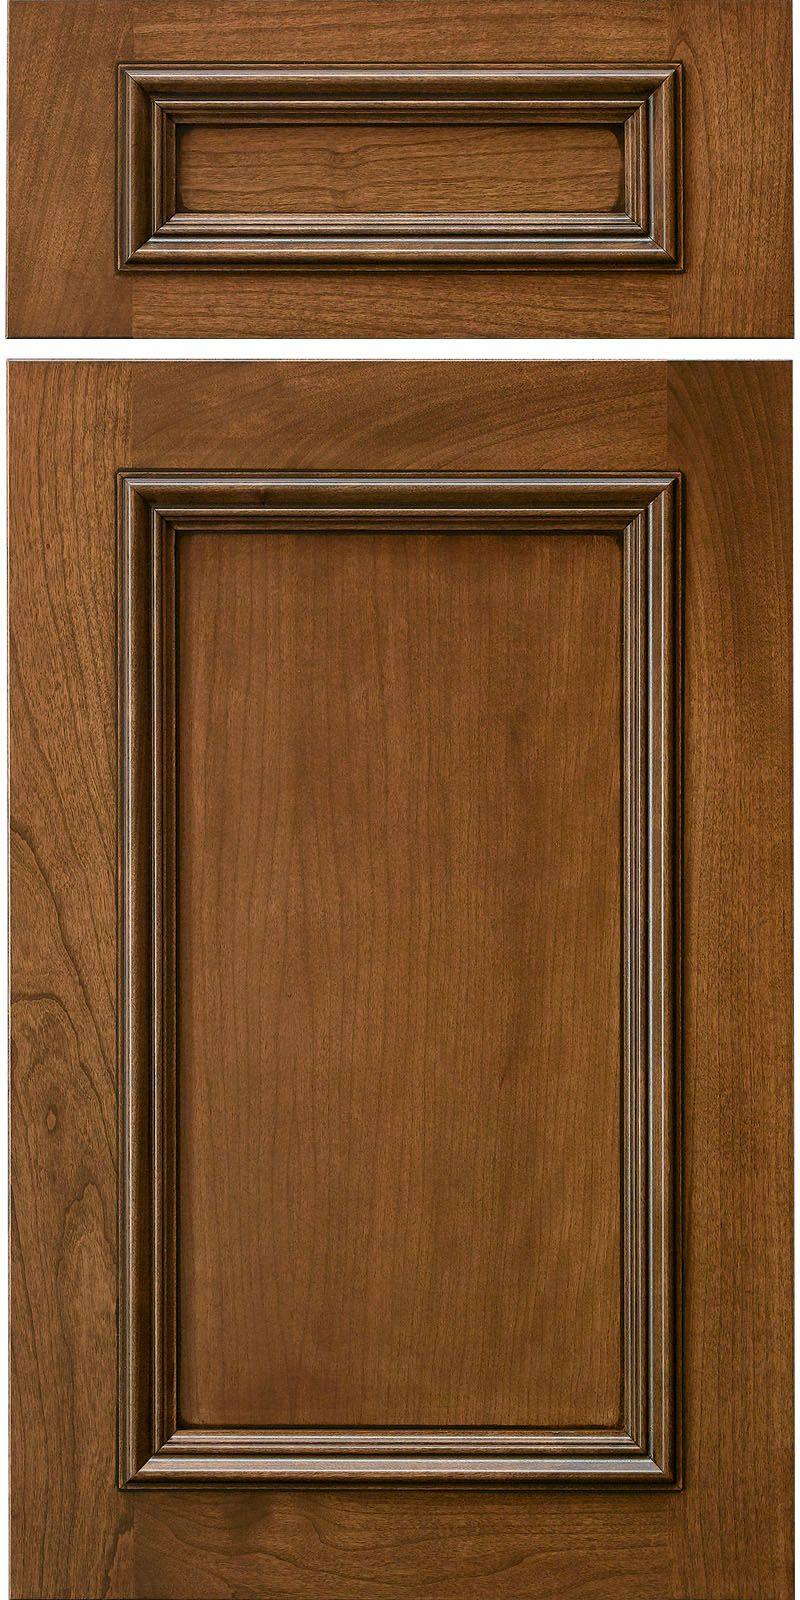 Applied Moulding Doors Drawer Fronts Wood Cabinet Doors Cabinet Door Styles Cabinet Doors